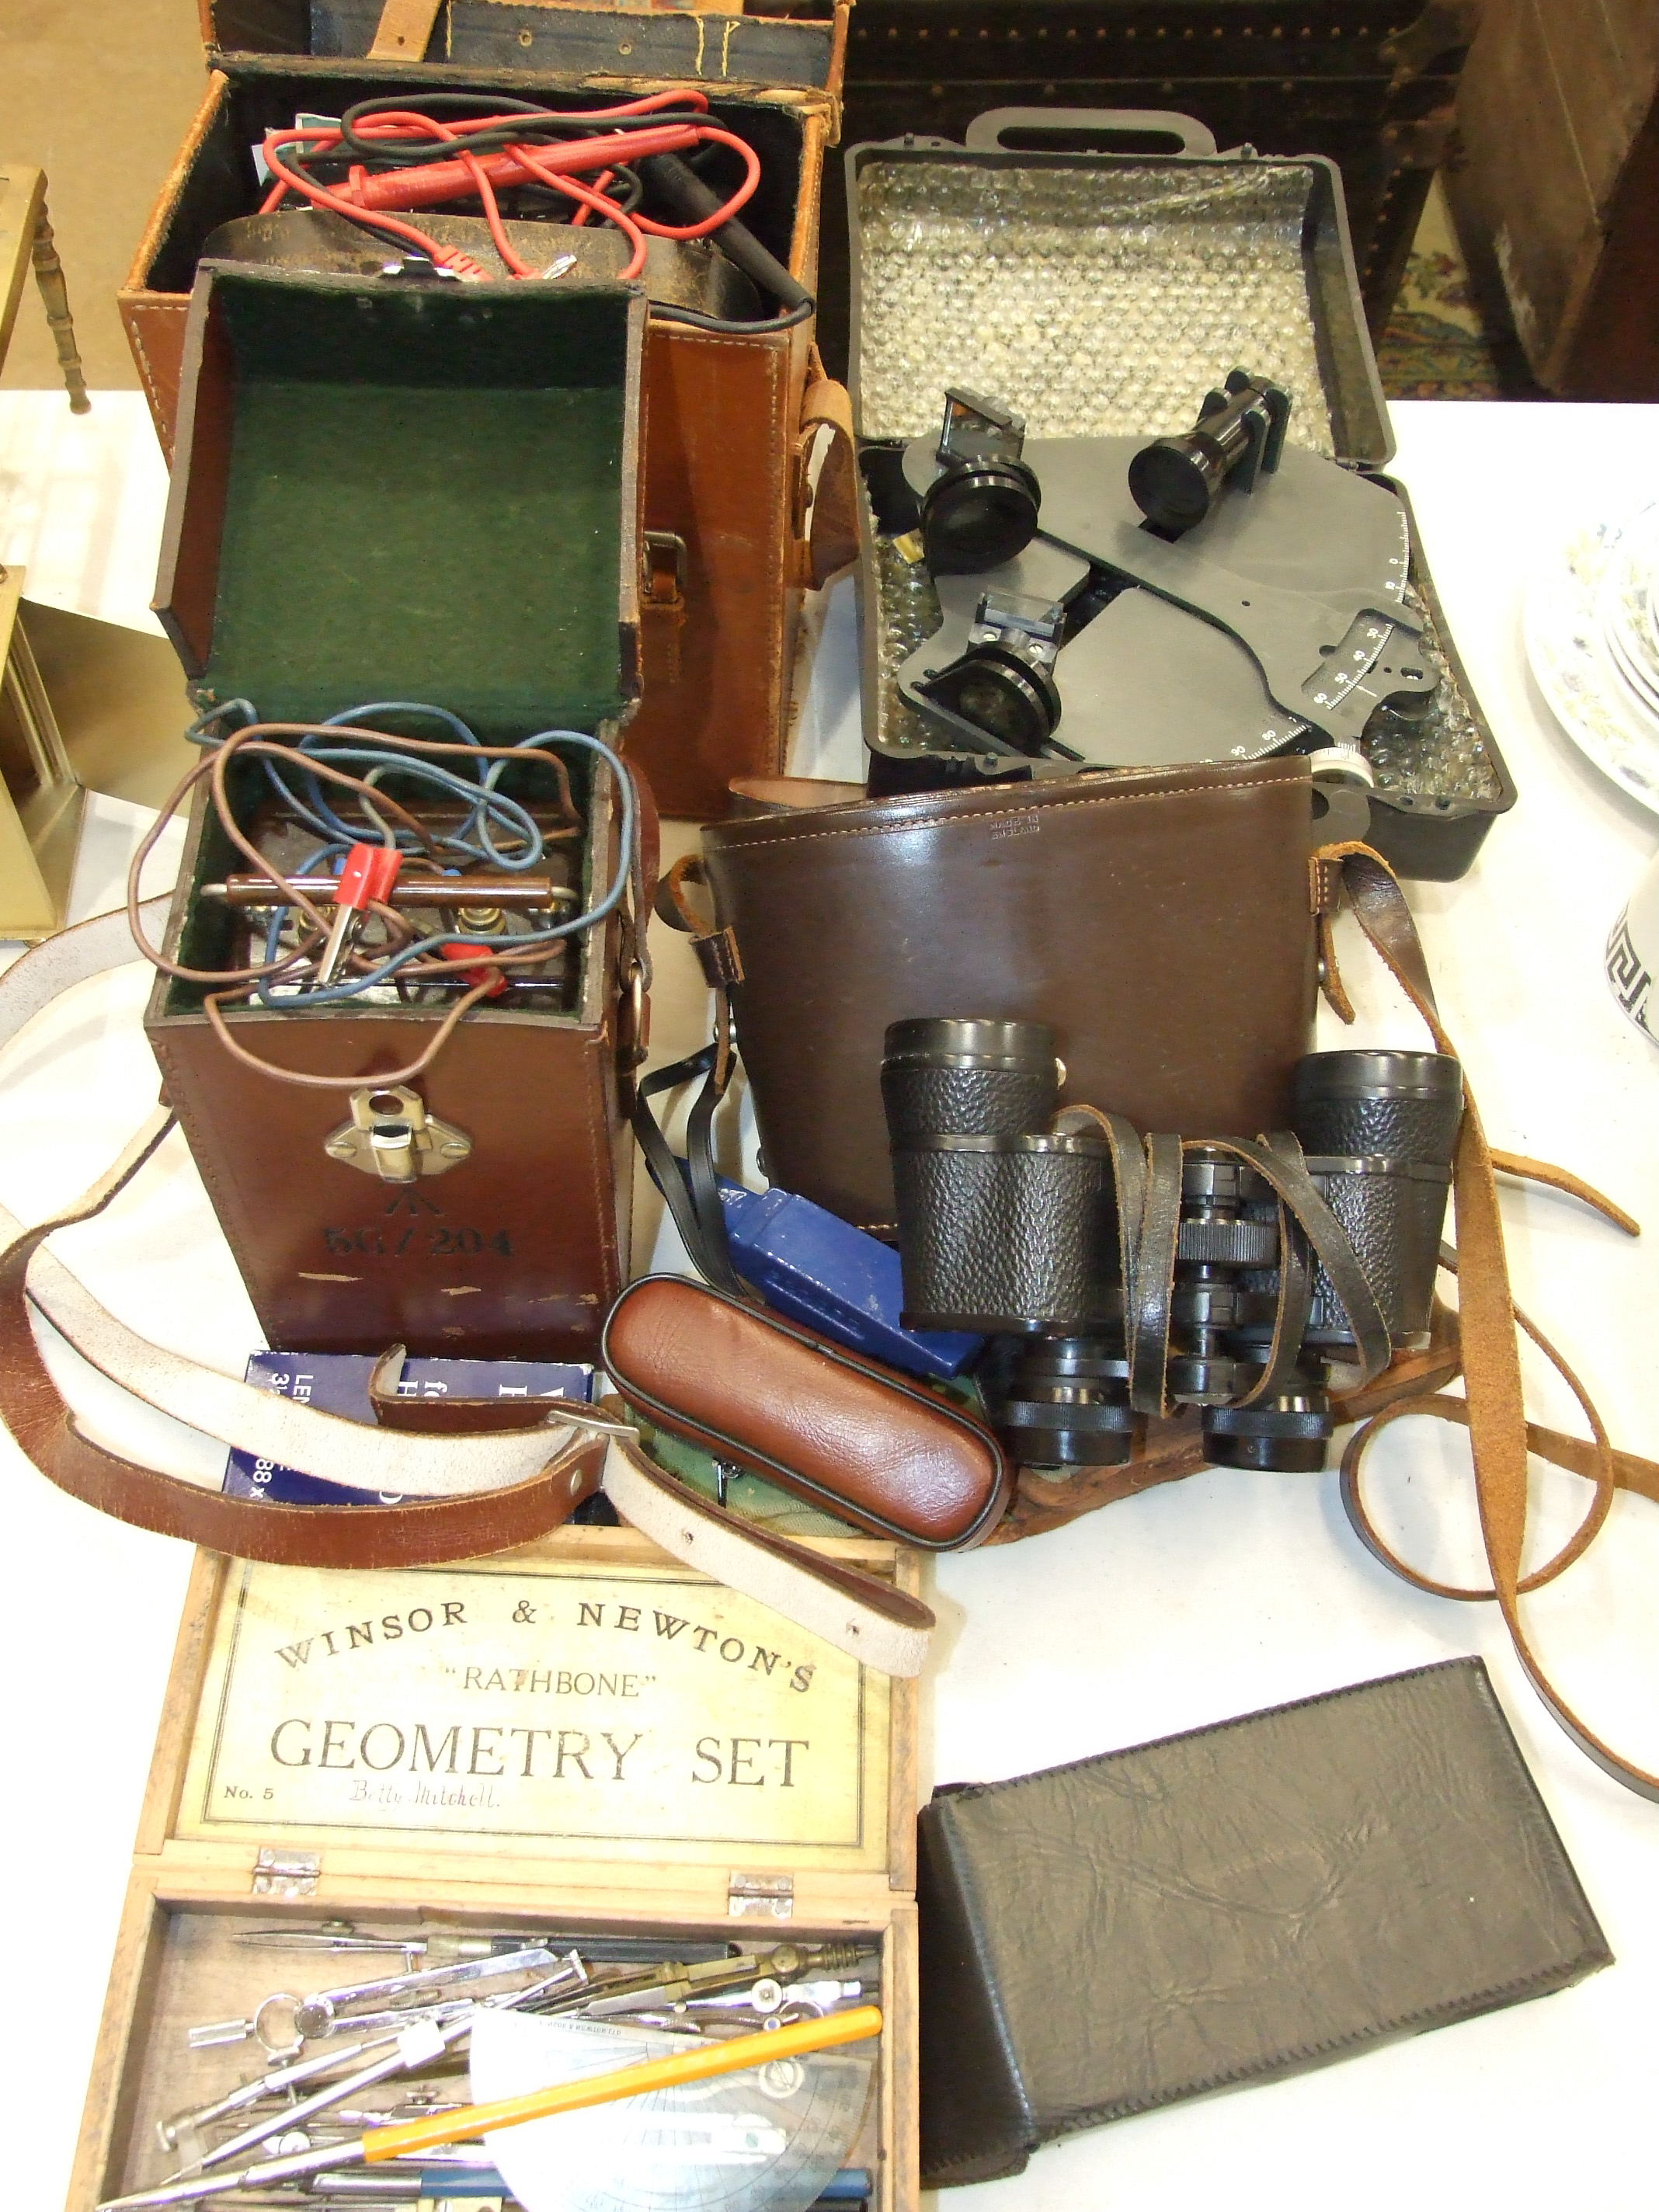 An Avo Model 8 Universal Avometer in leather case, a Record 'Minor' insulation tester, a pair of